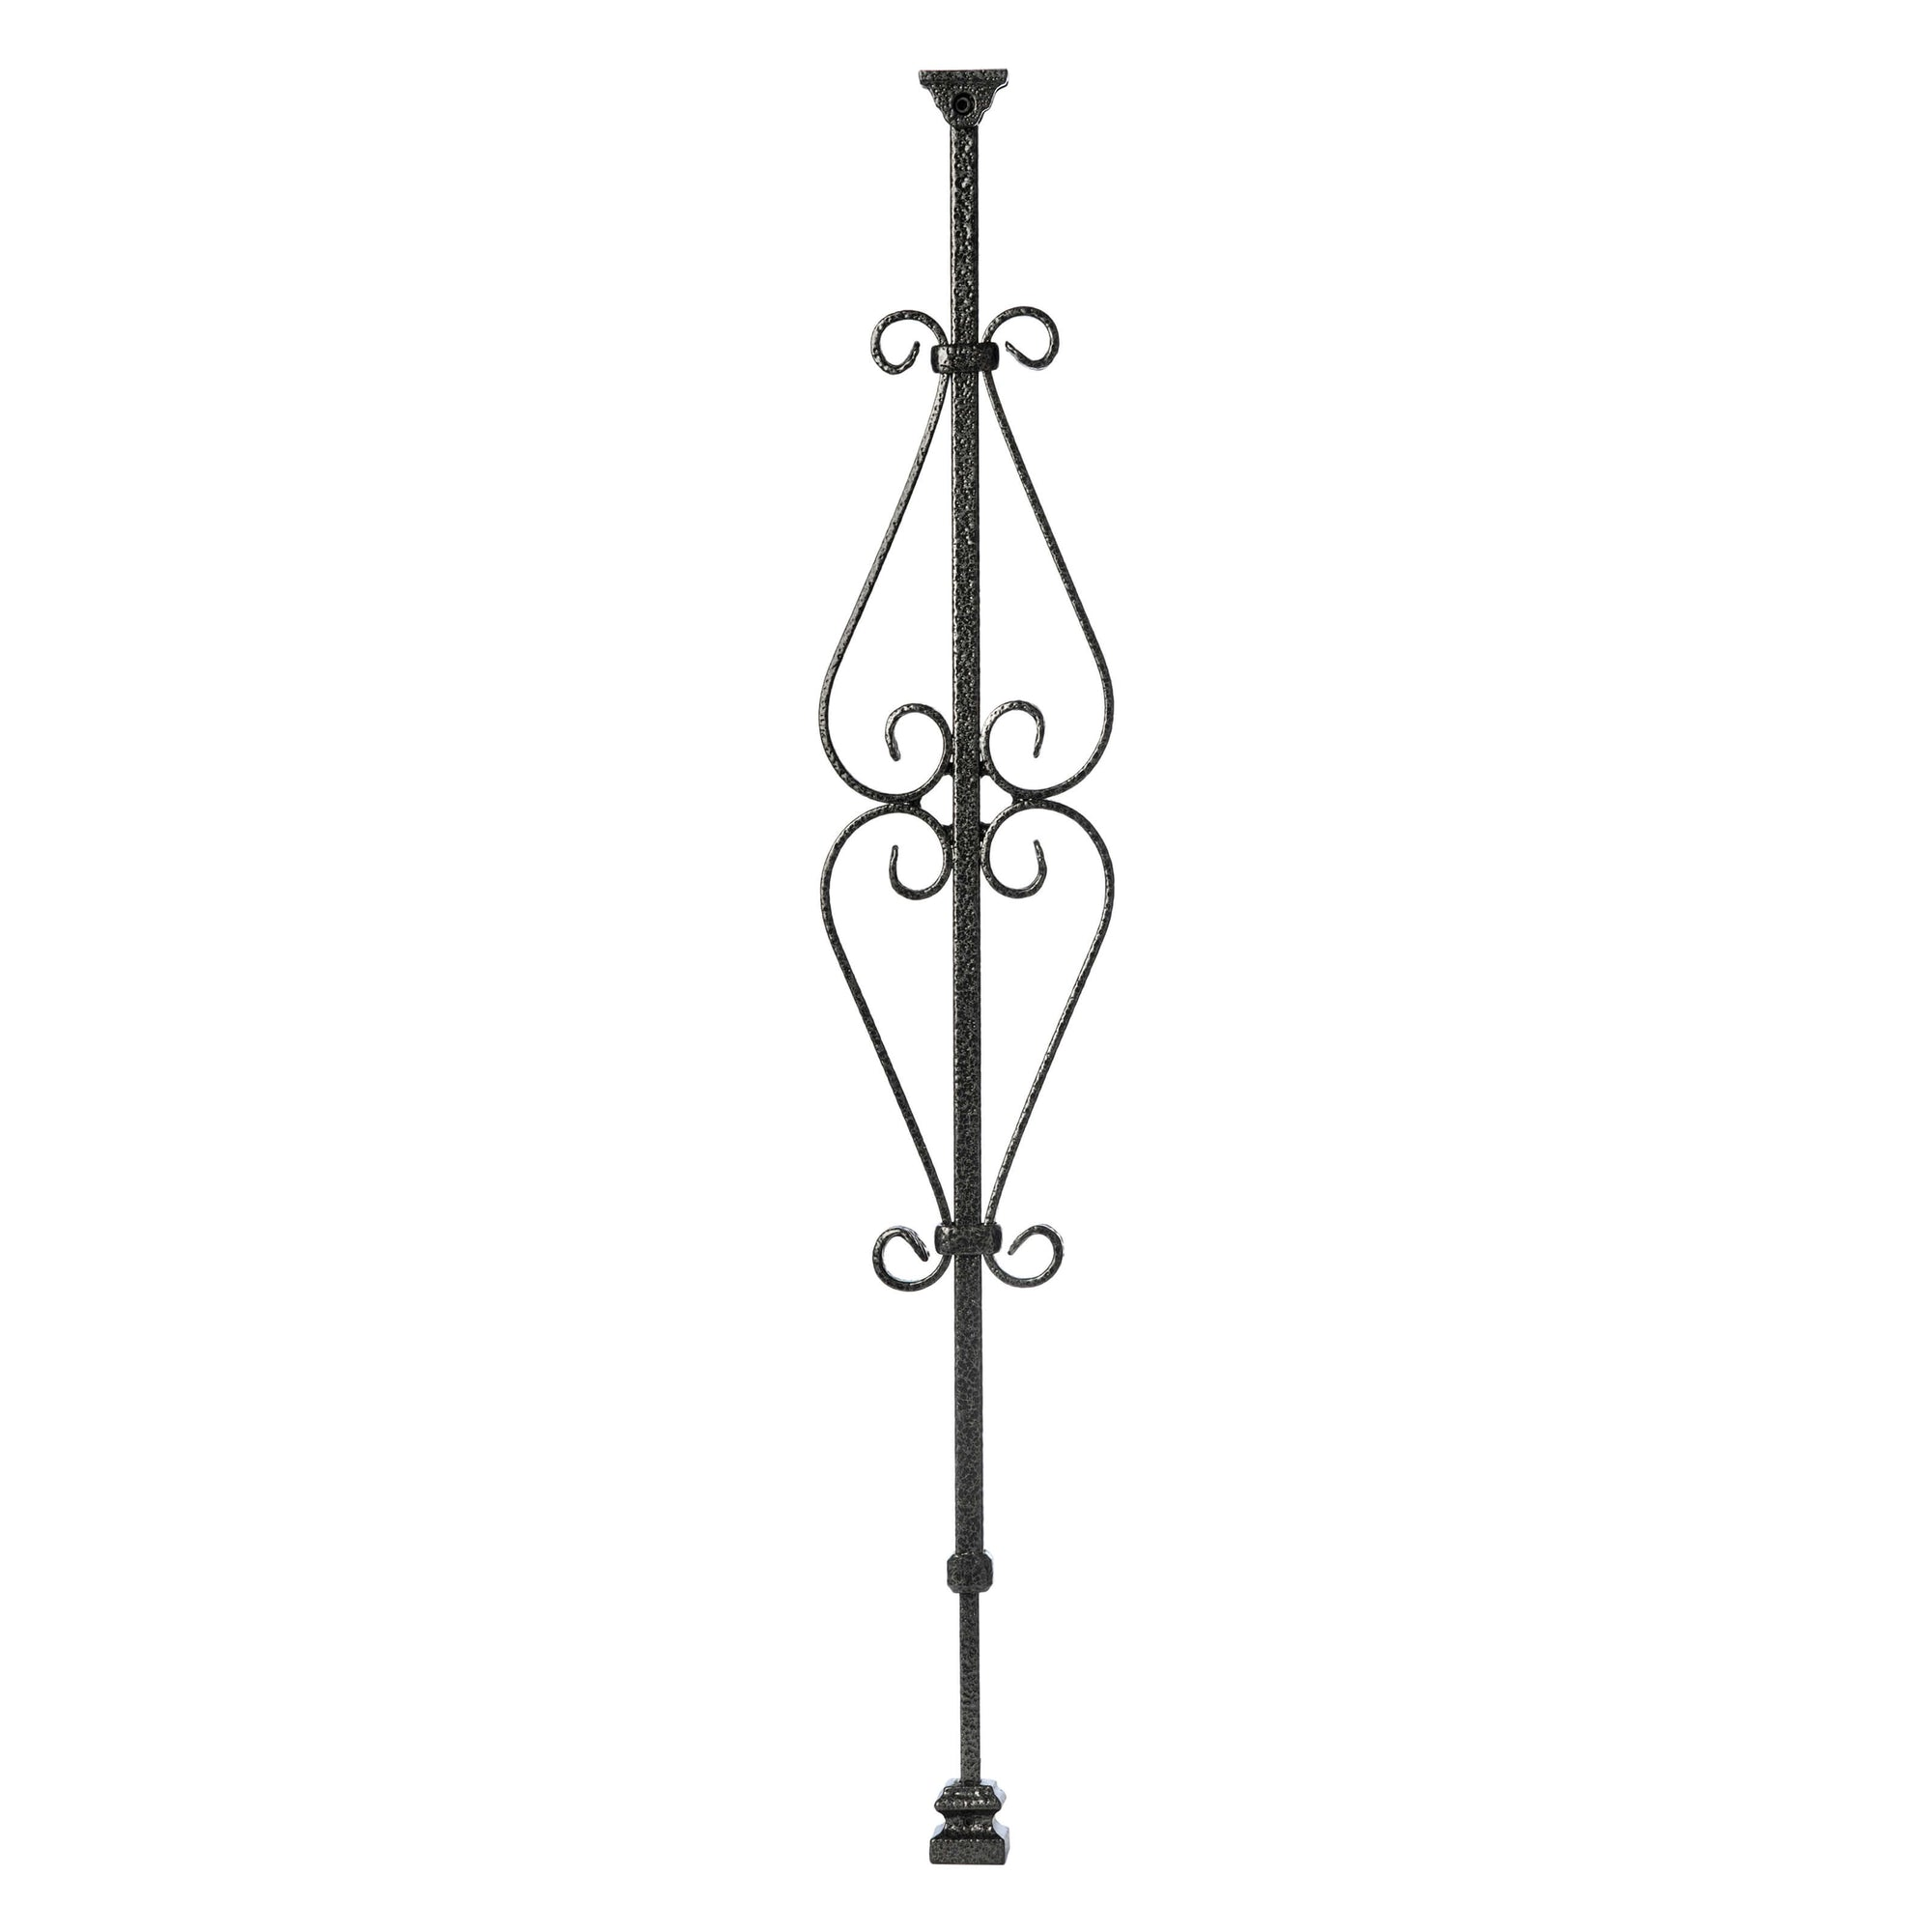 """Ole Iron Slides"" - 1/2"" Square x 29-1/2""-38""H CISSSC Spade Scroll Adjustable Iron Baluster"